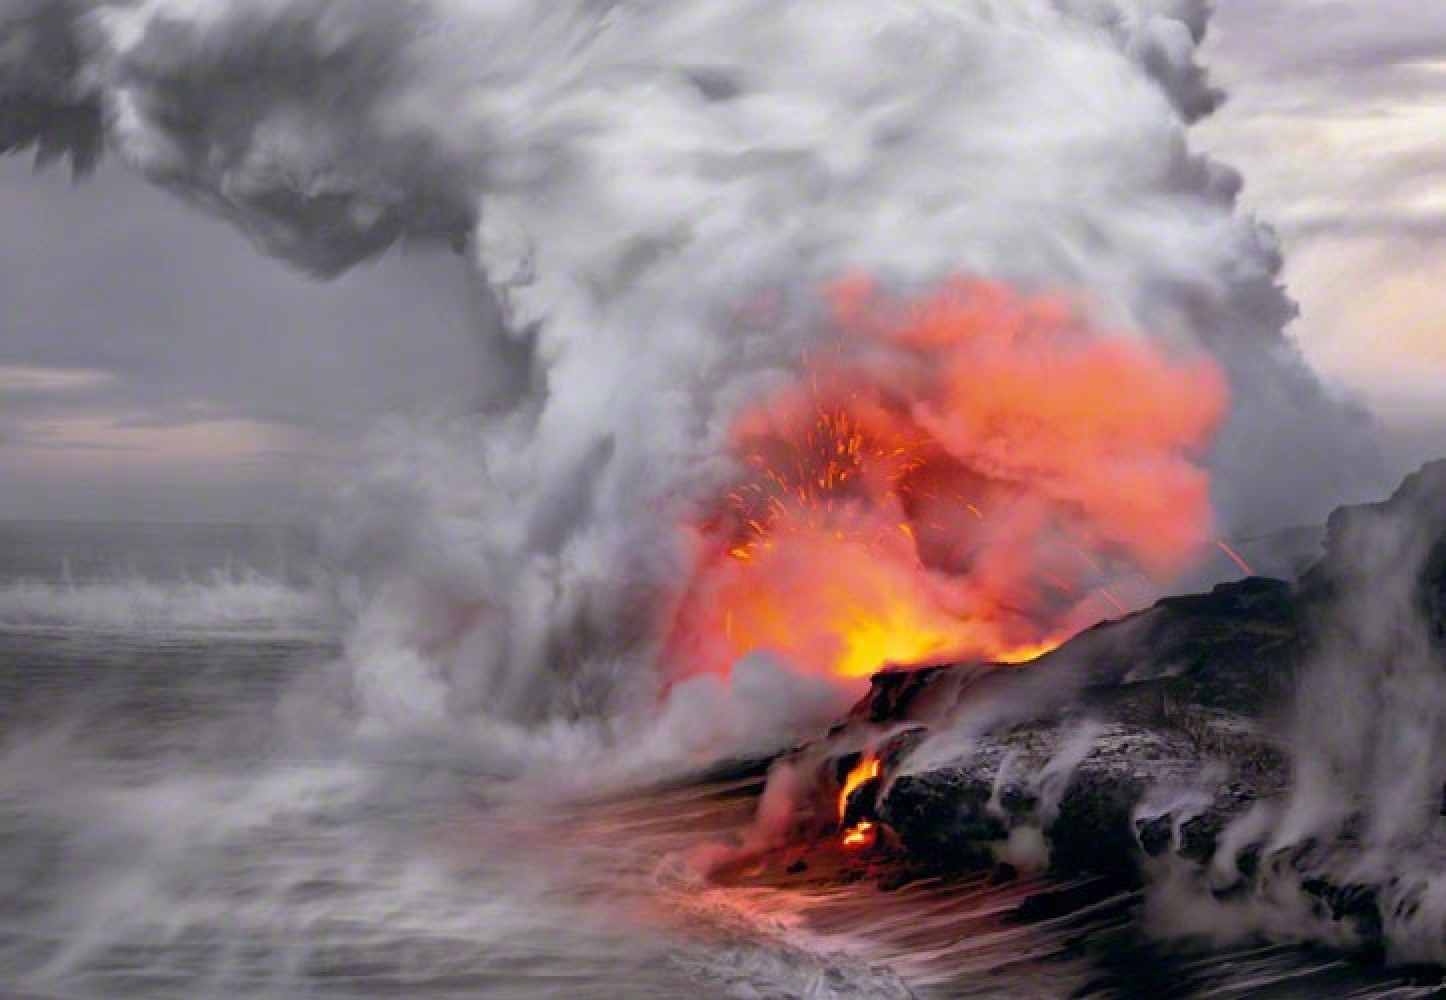 Pele's Whisper (Kilauea, Big Island, Hawaii)